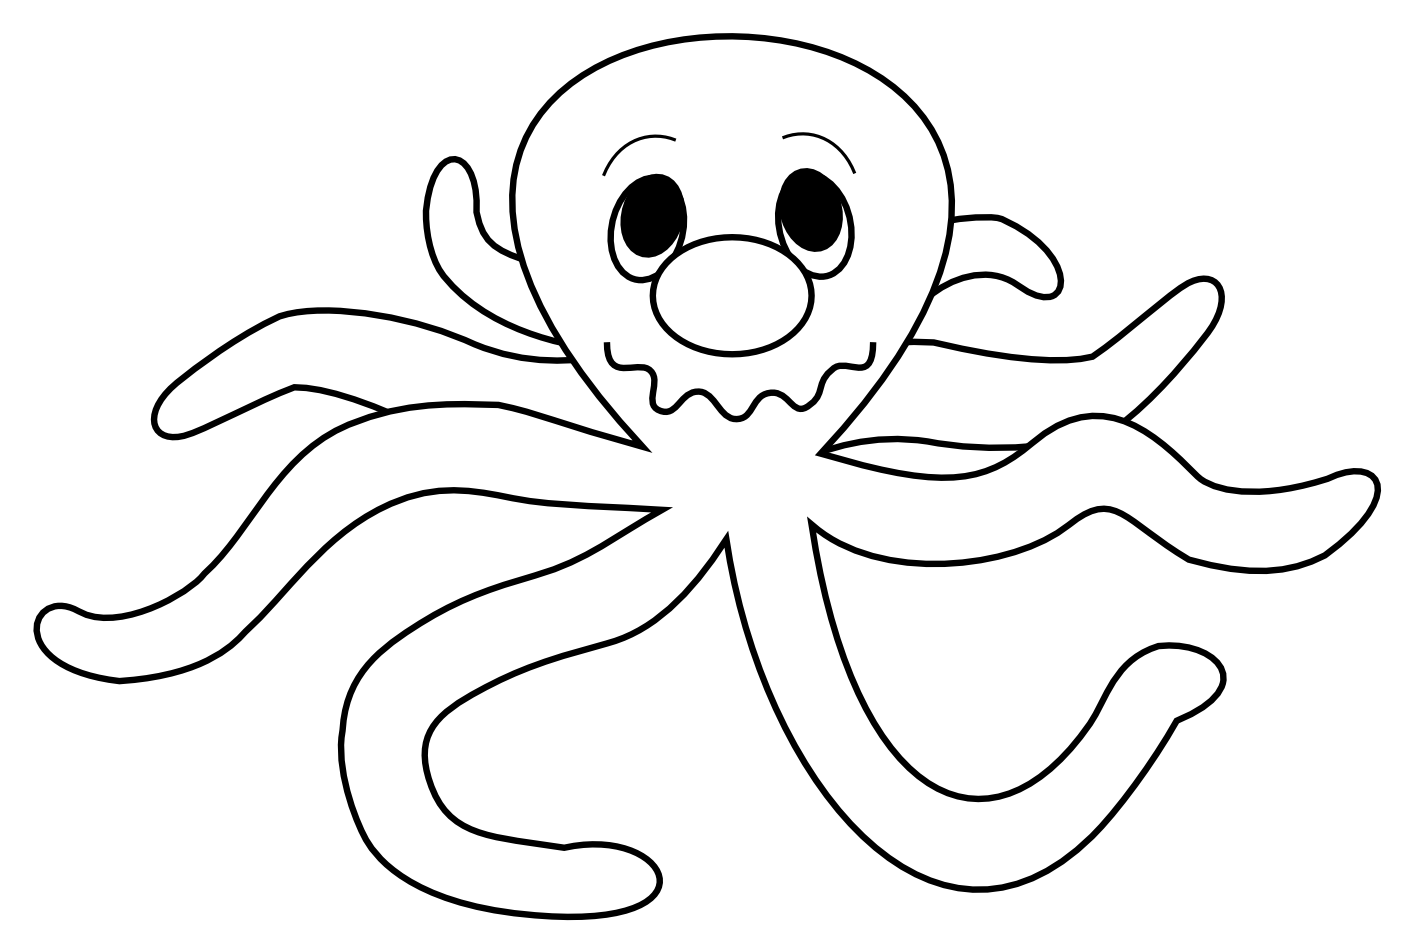 1408x948 Octopus Black And White Octopus Clipart Outline Clipartfox 2